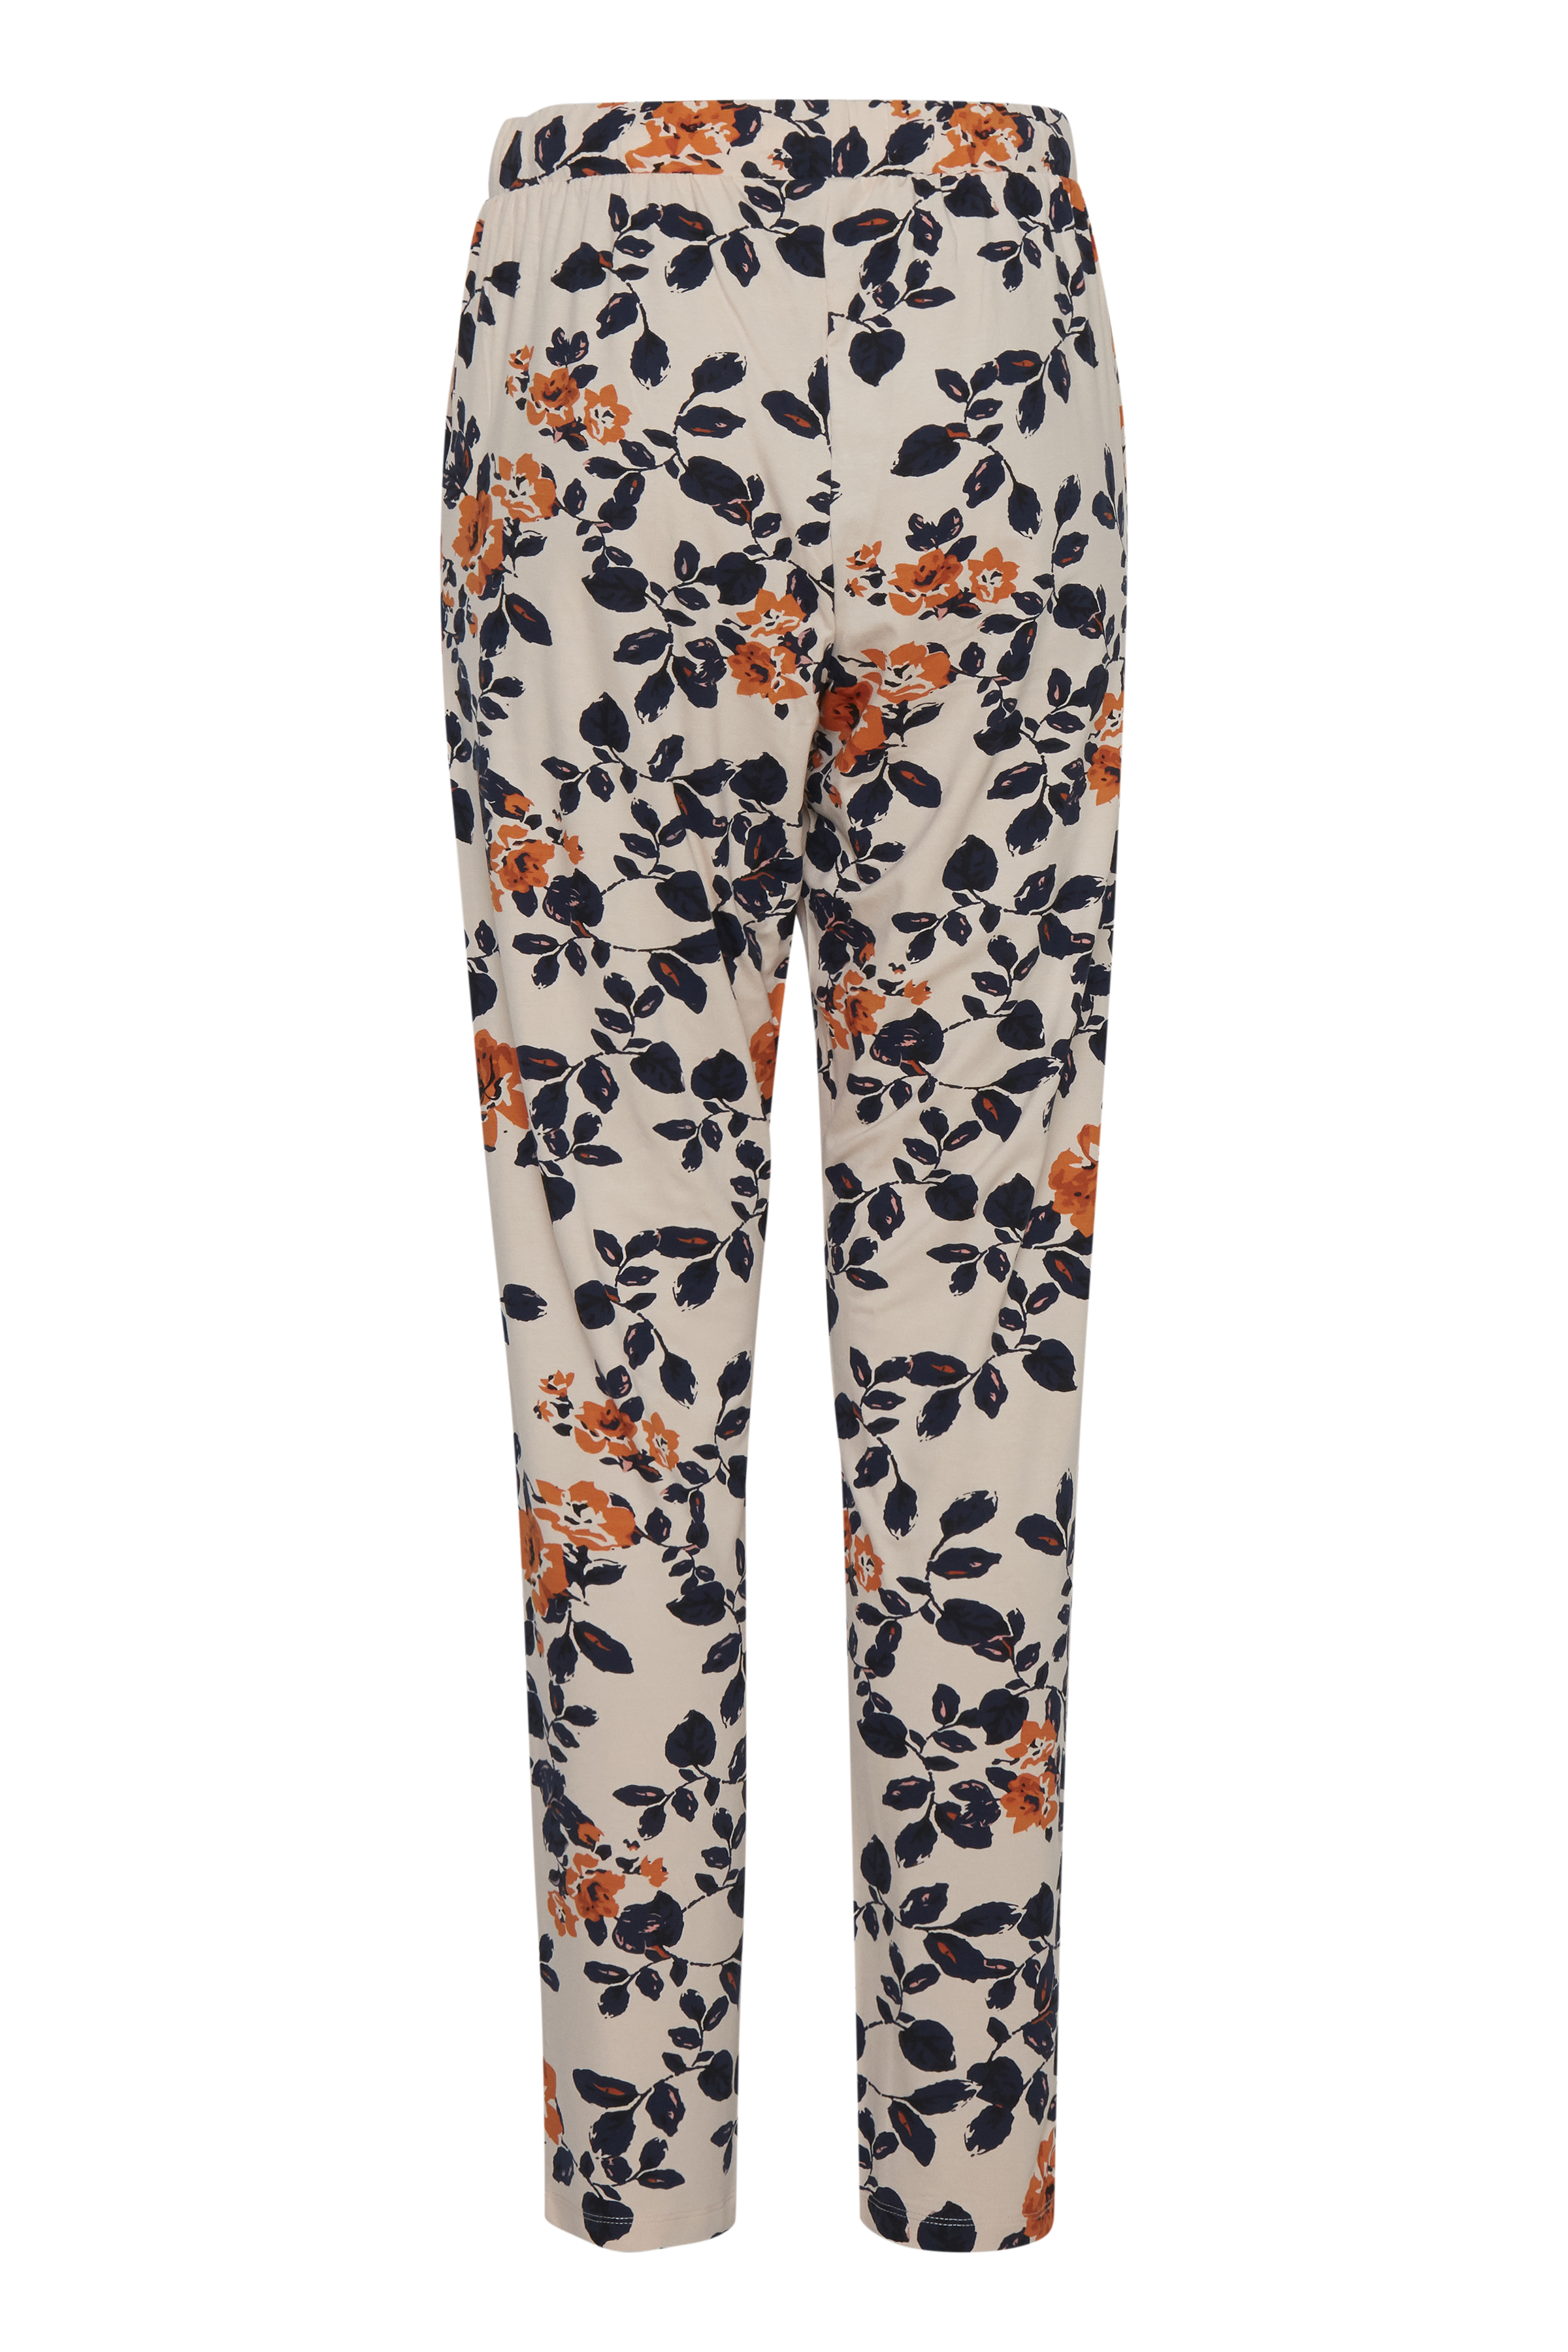 Bisque Pants Casual fra Ichi – Køb Bisque Pants Casual fra str. XS-XL her